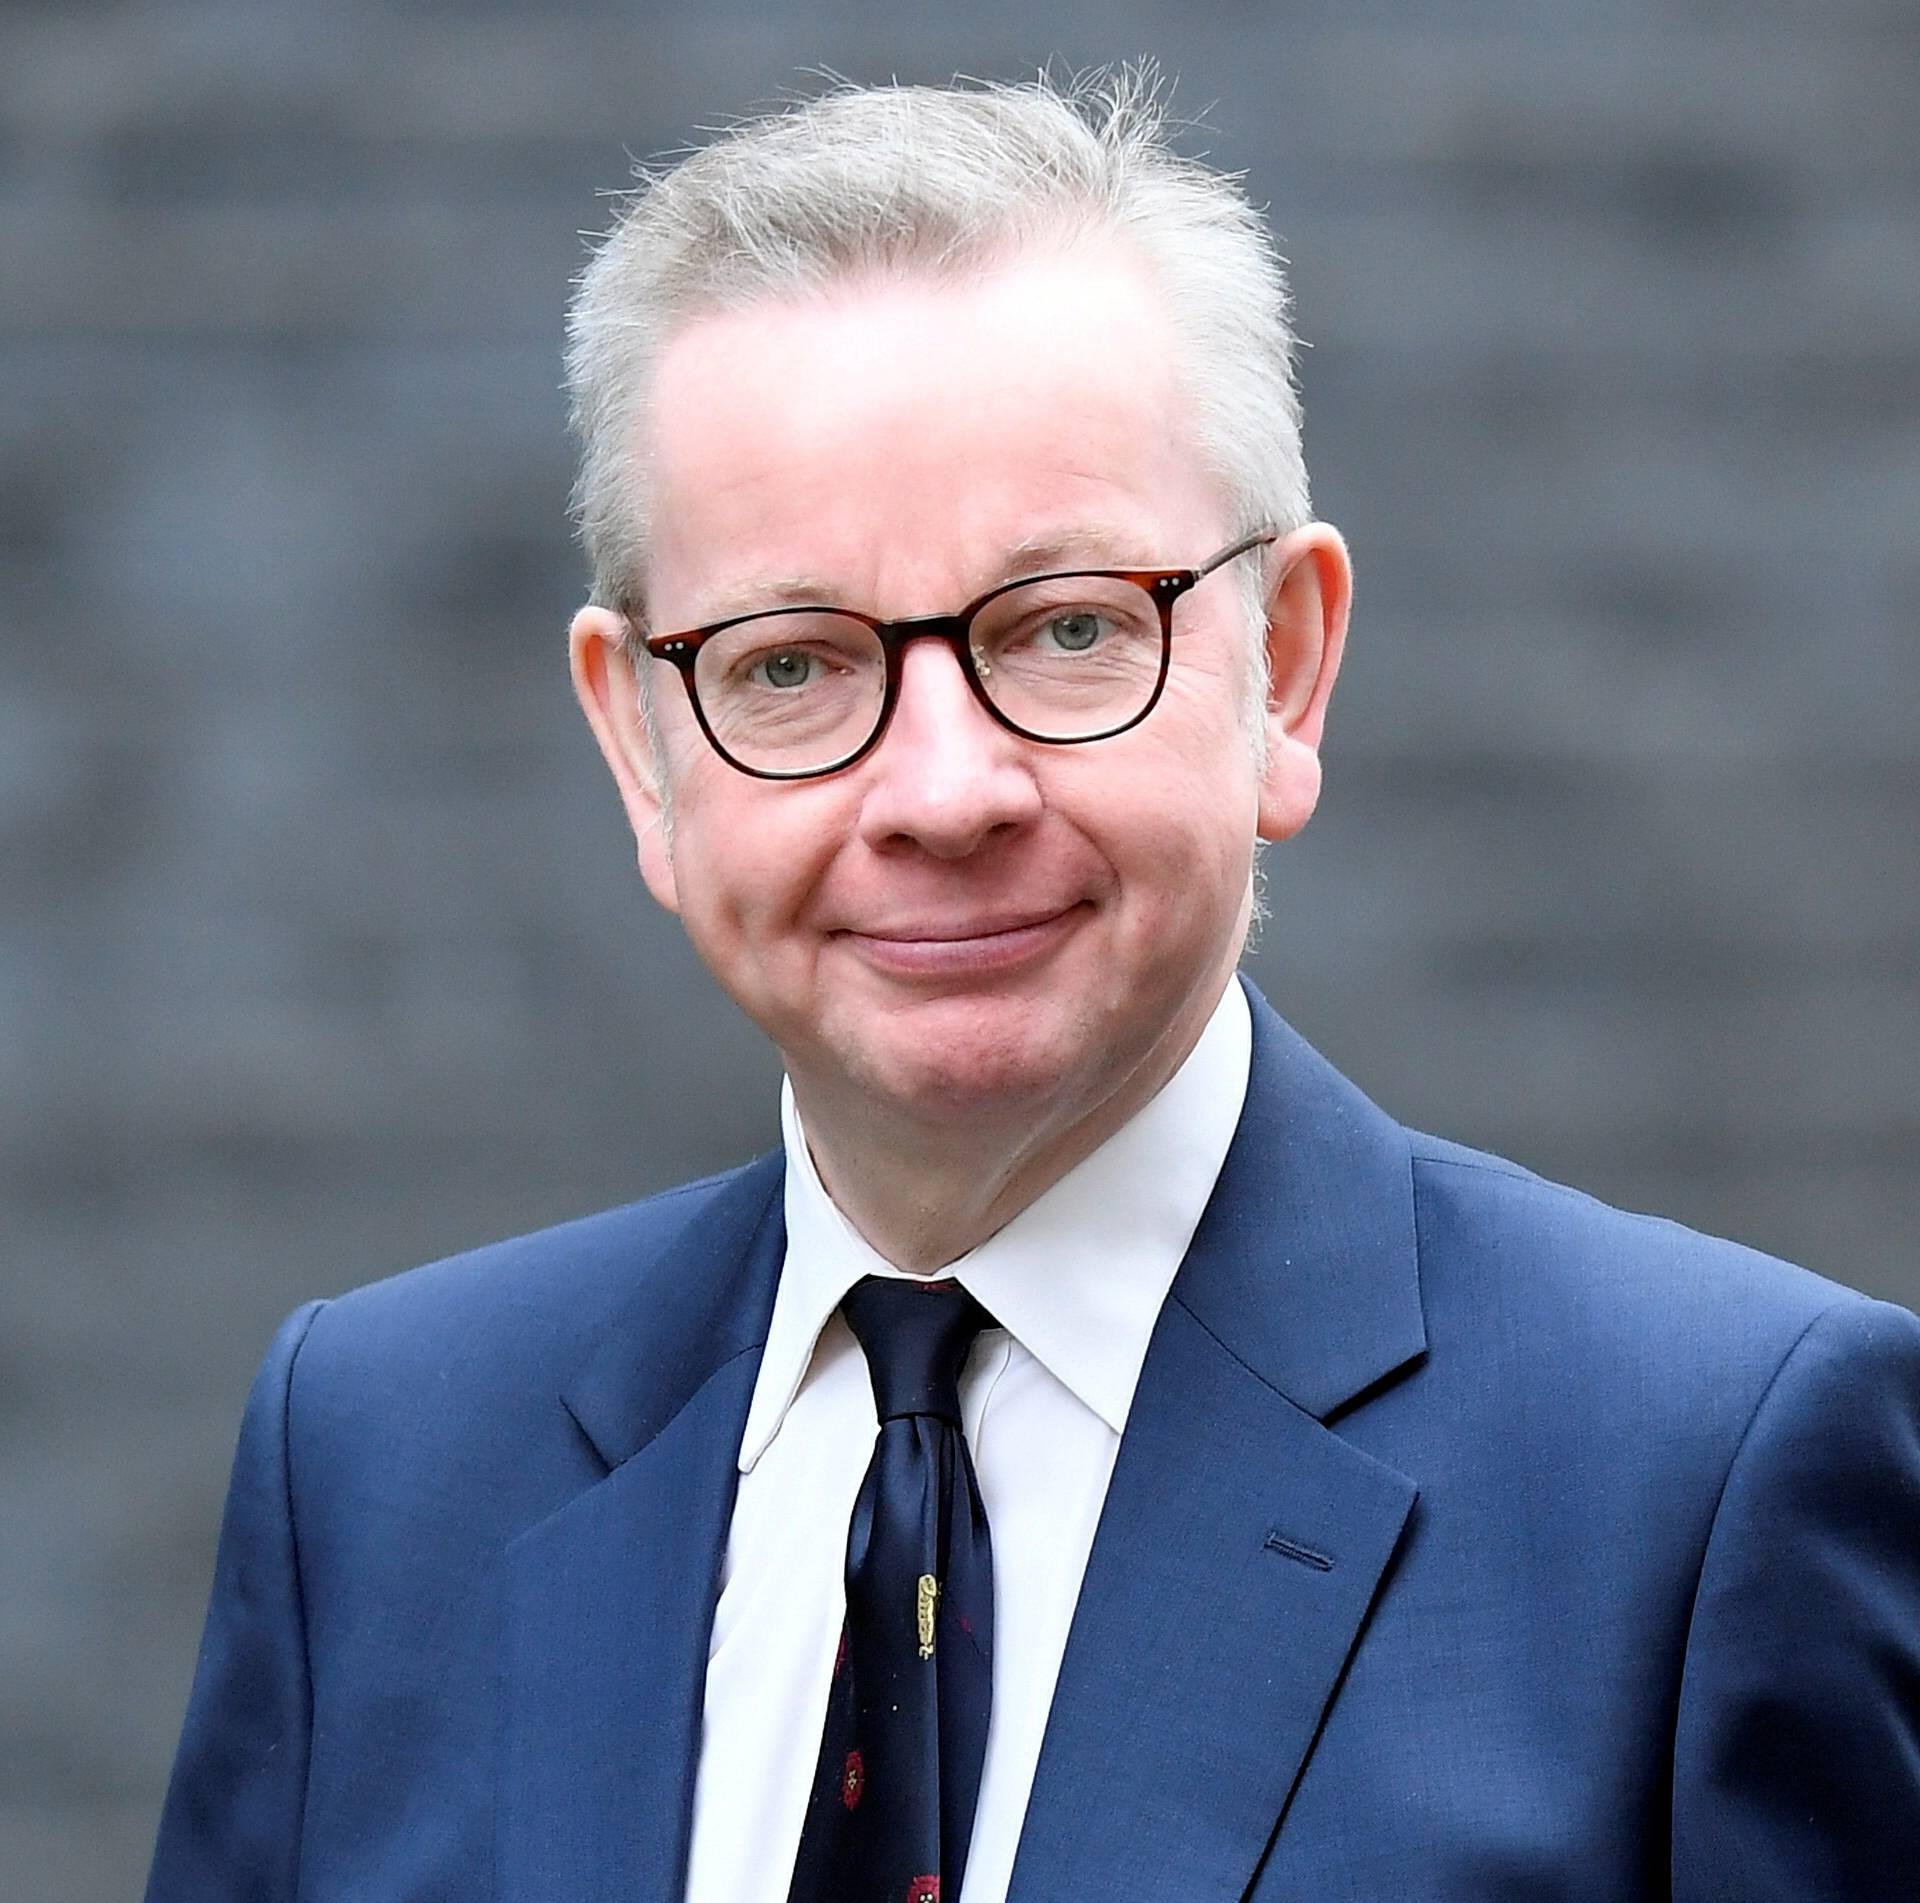 FILE PHOTO: Michael Gove arrives at Downing Street in London